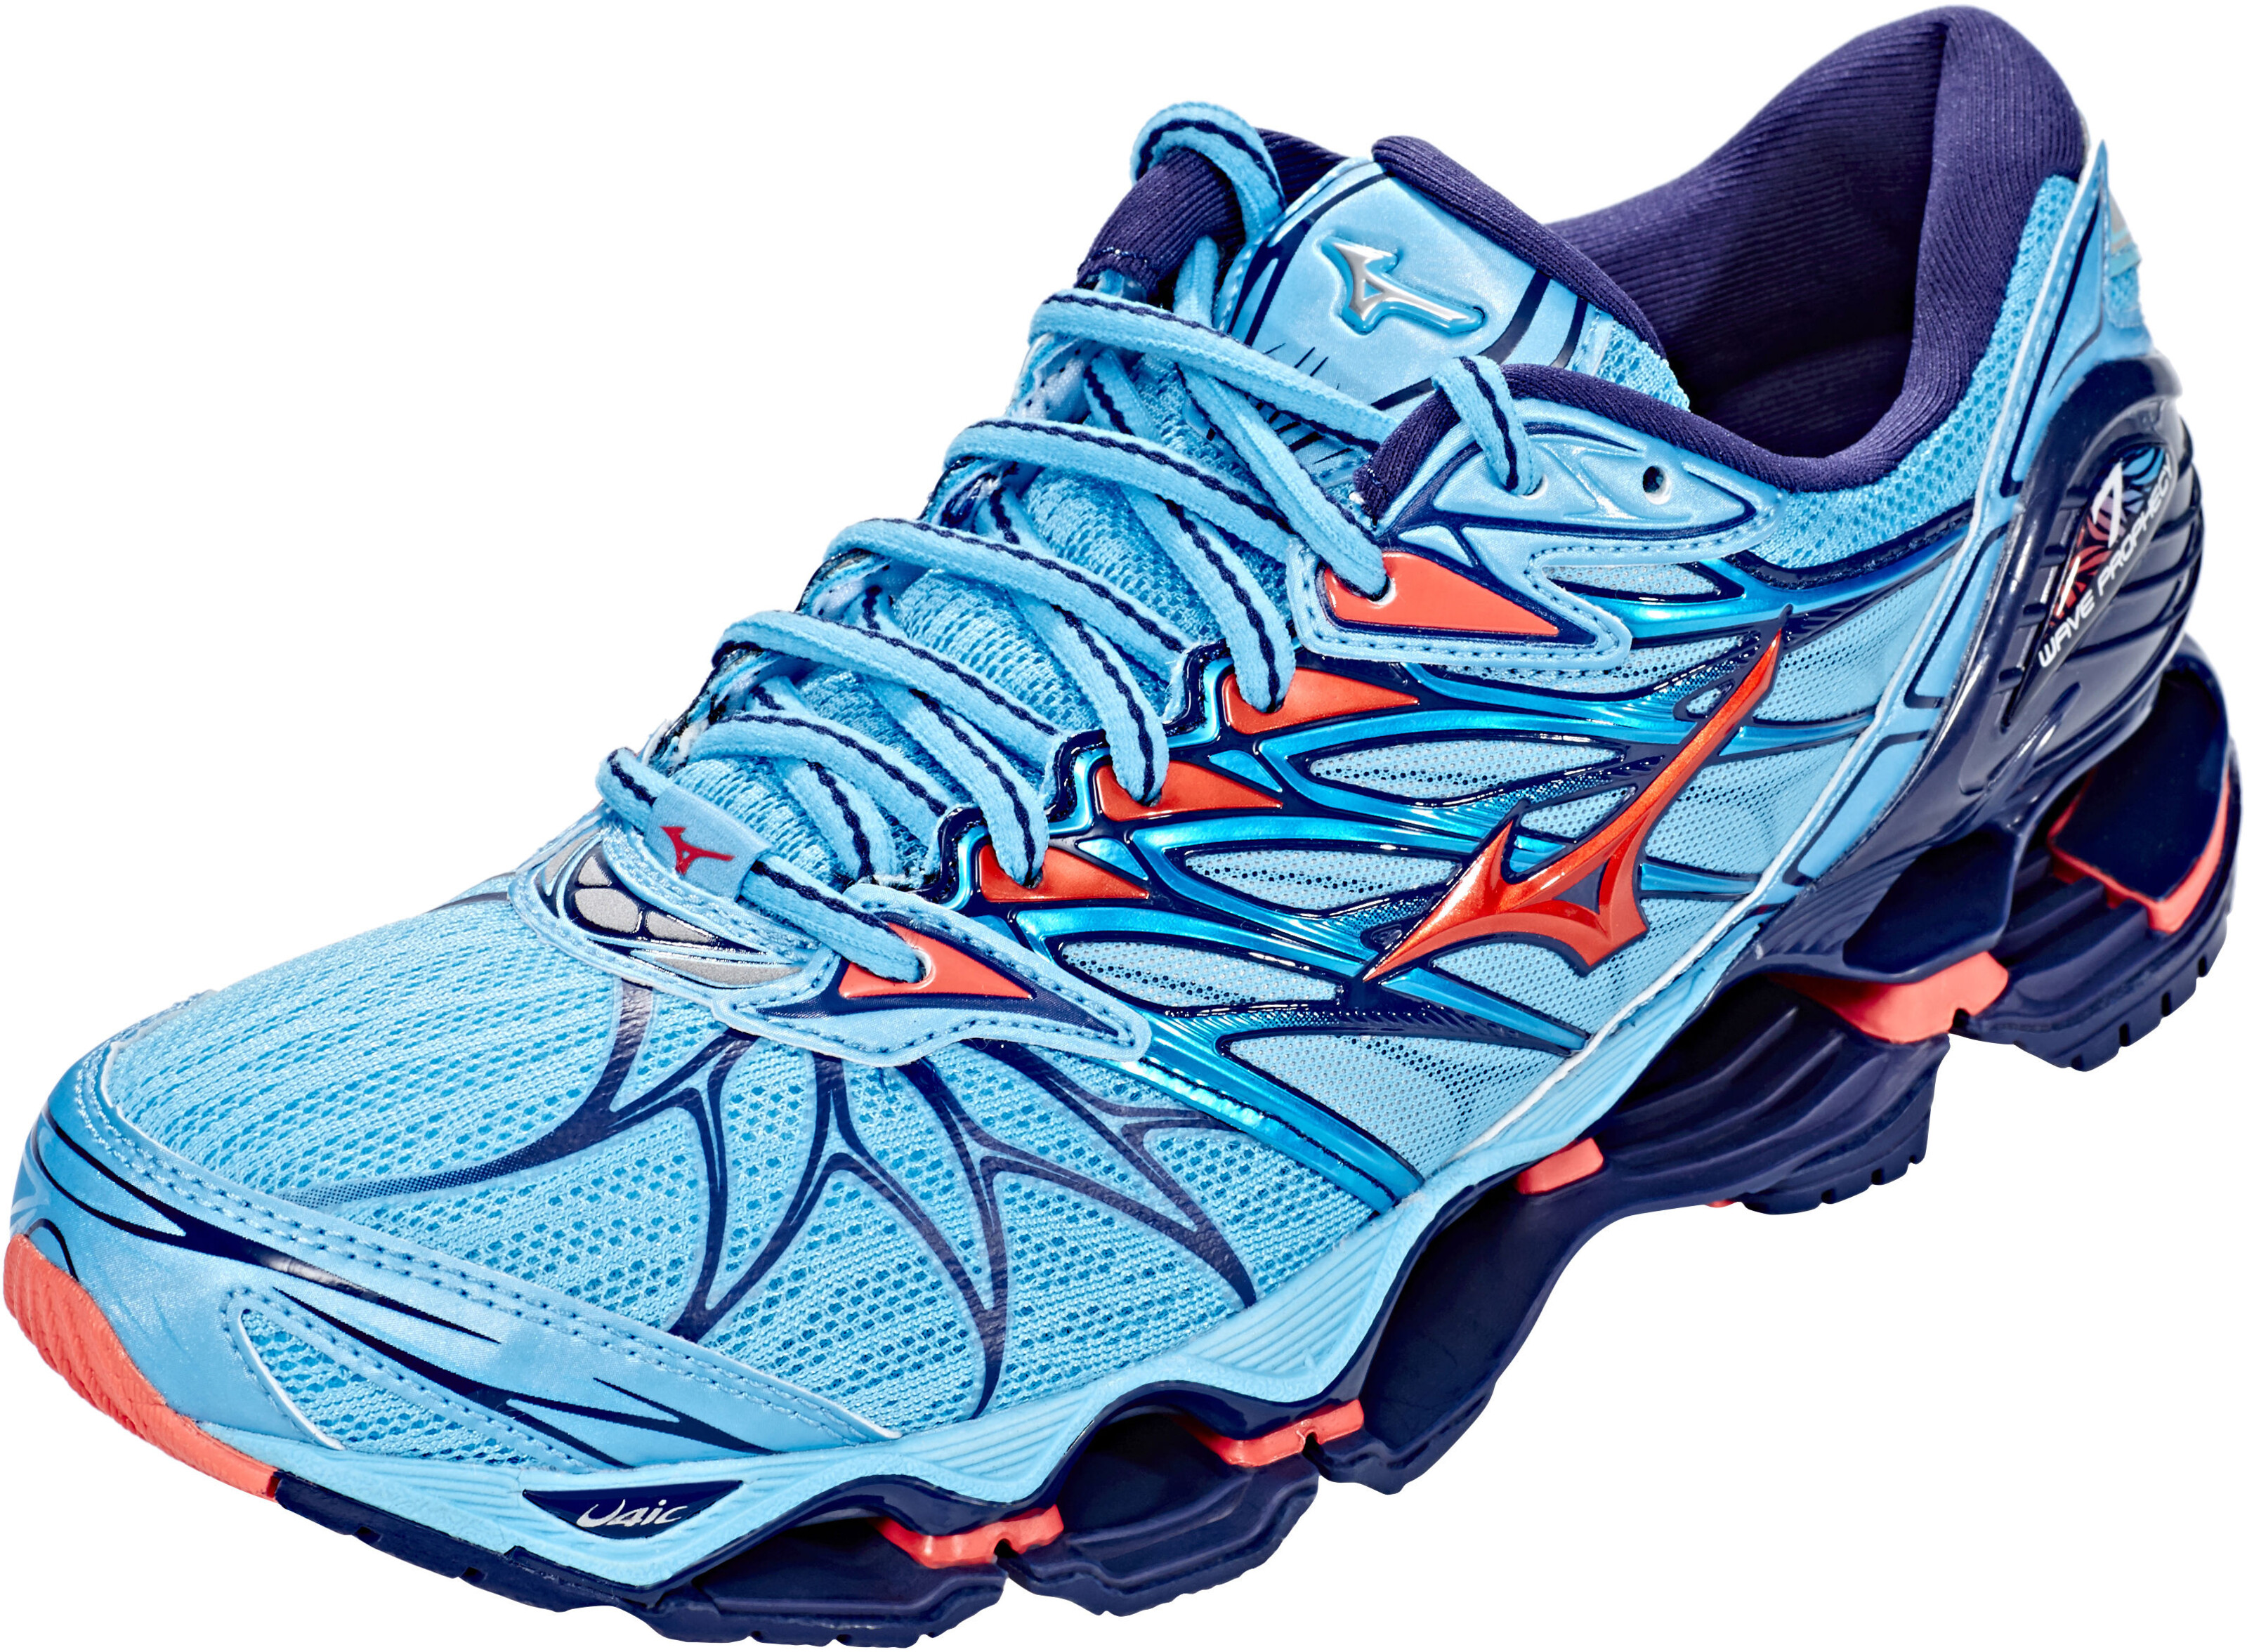 7bb03c028ad23a Mizuno Wave Prophecy 7 Running Shoes Women blue at Addnature.co.uk